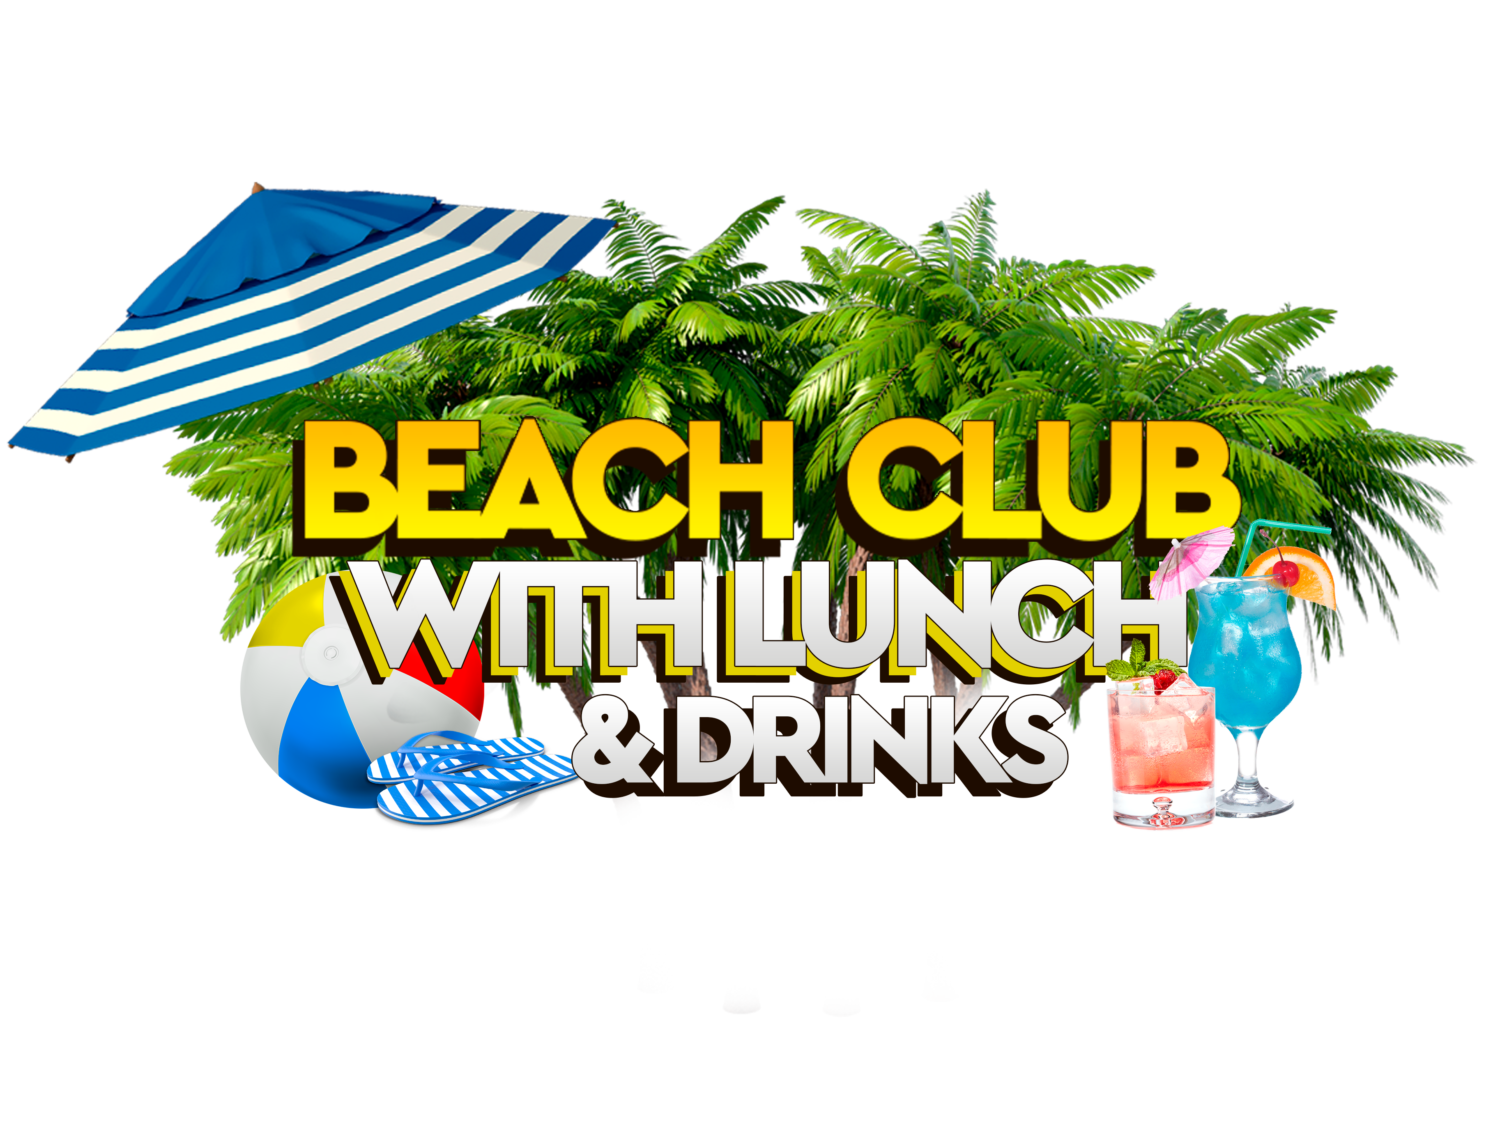 BEACH CLUB WITH LUNCH &DRINK